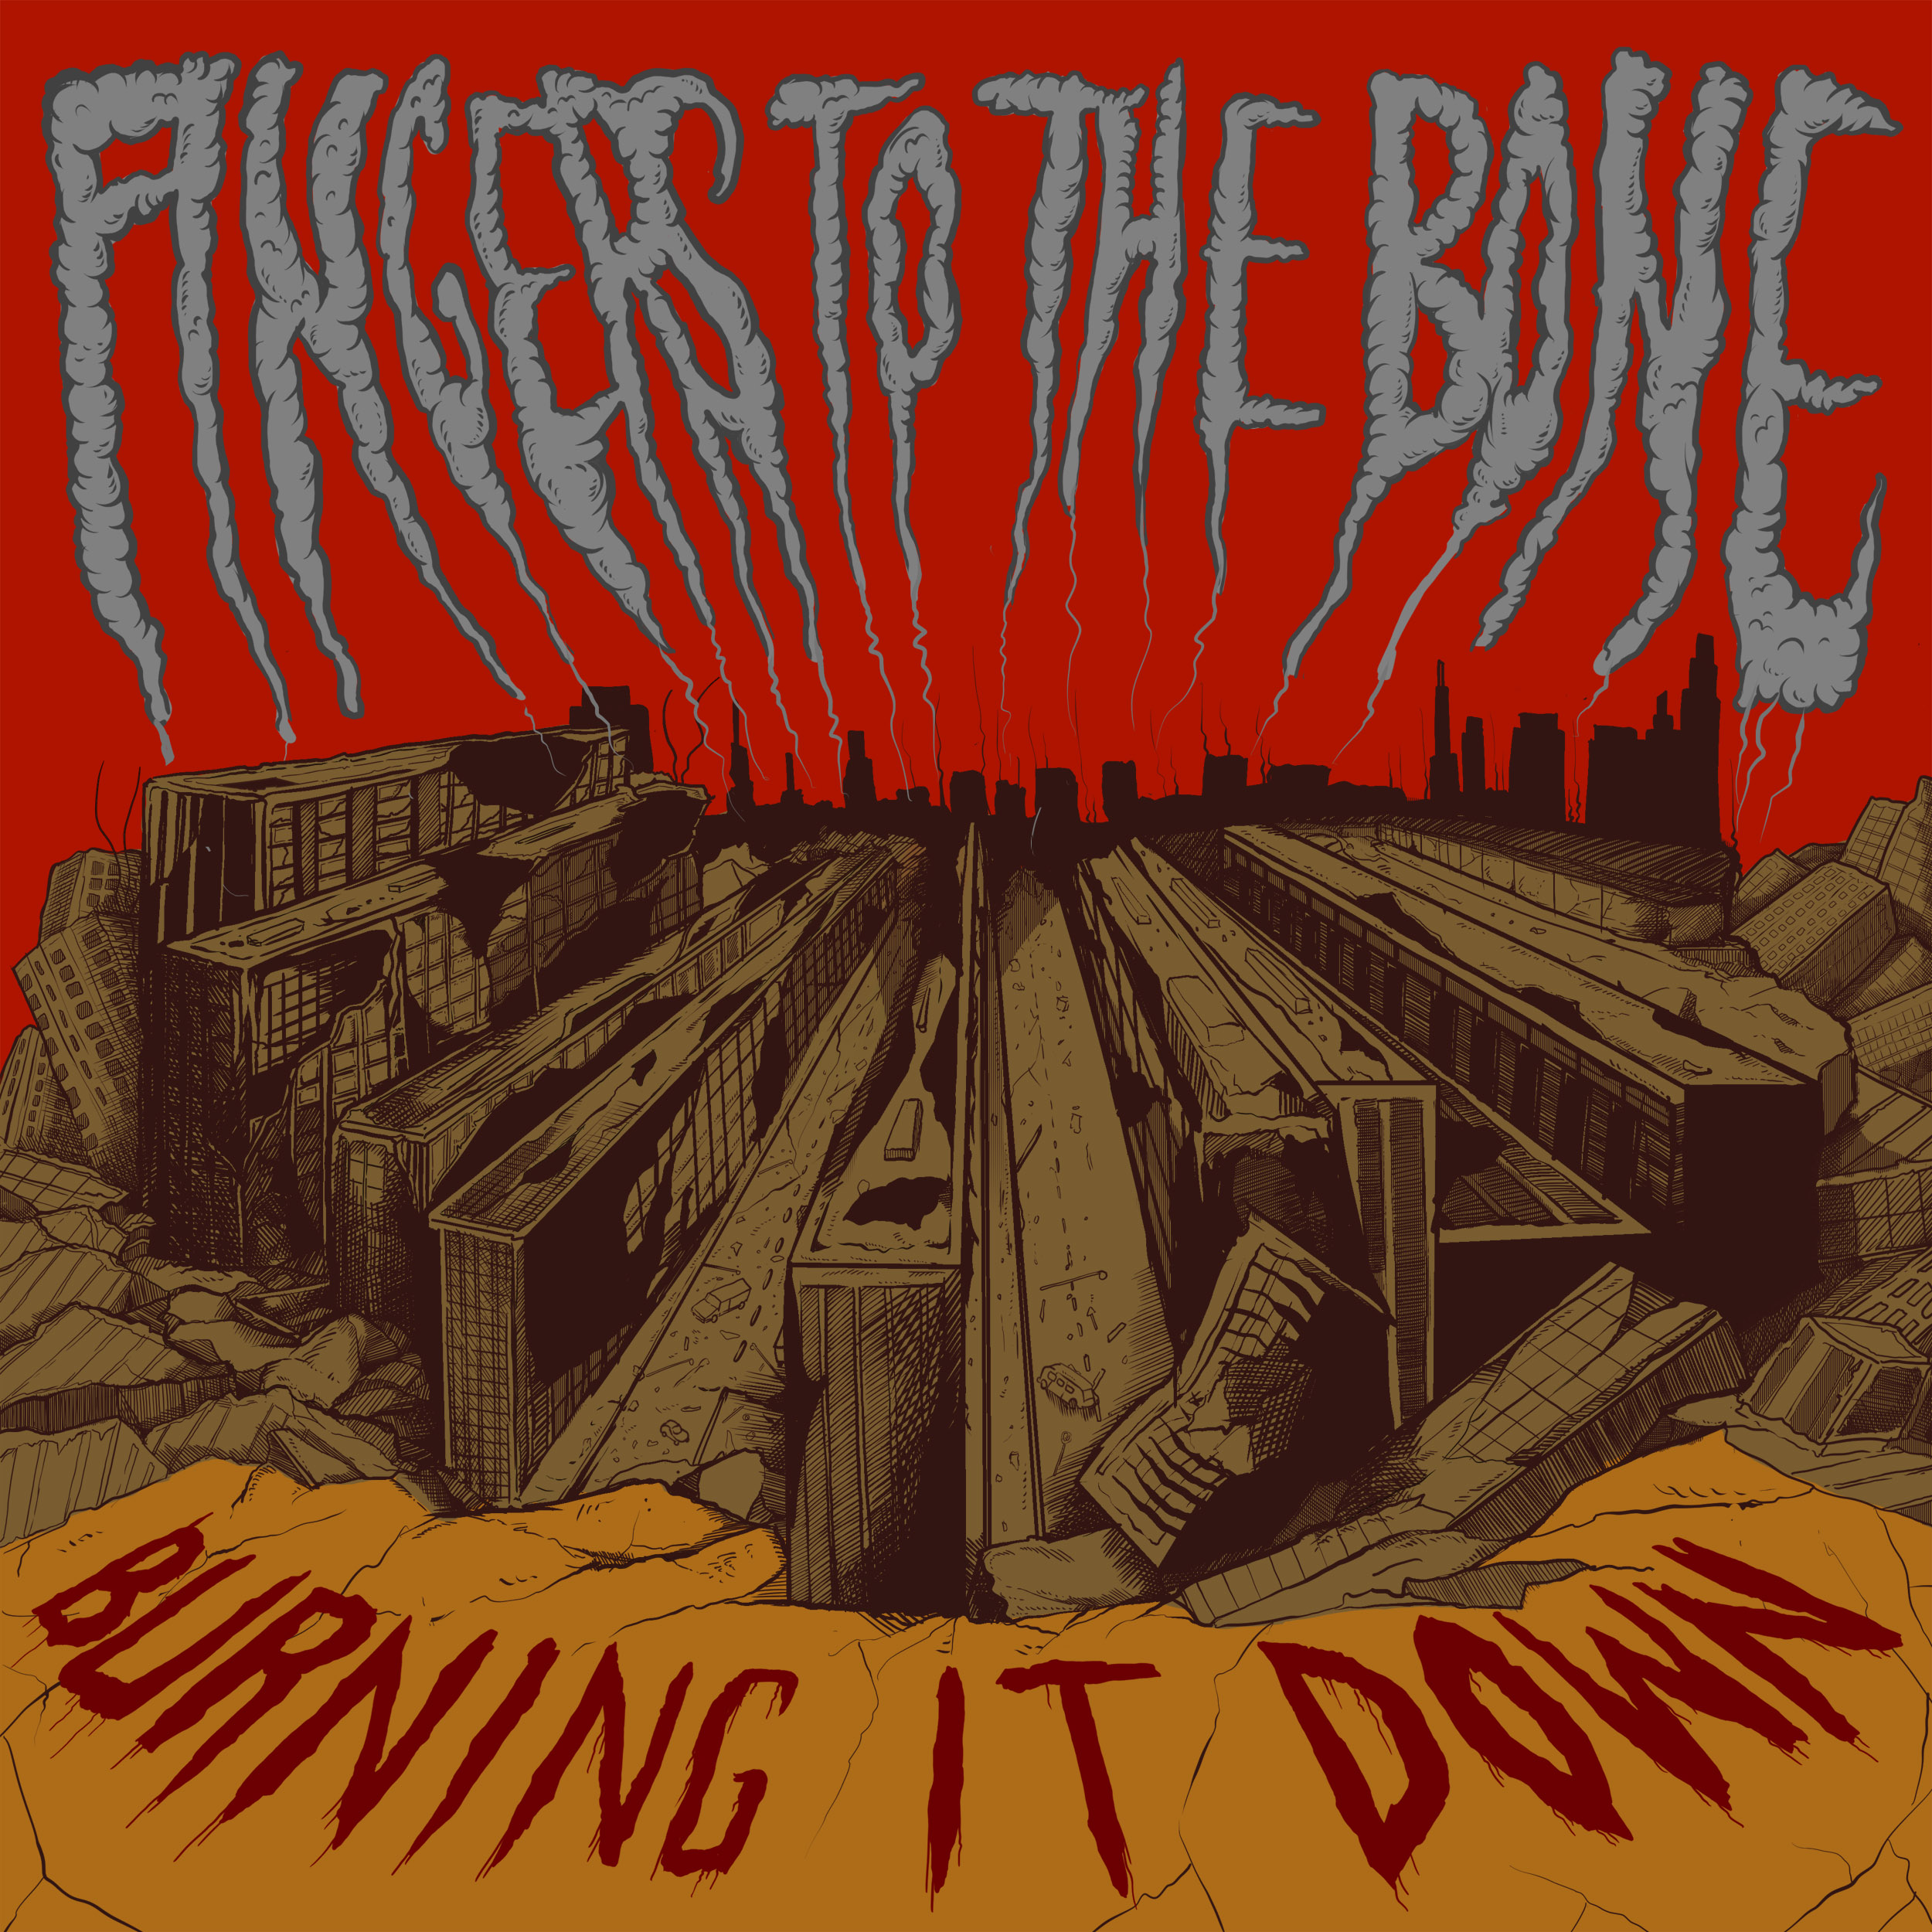 Fingers to the bone harcore bologna - cover artwork by giovanni tamponi illustration